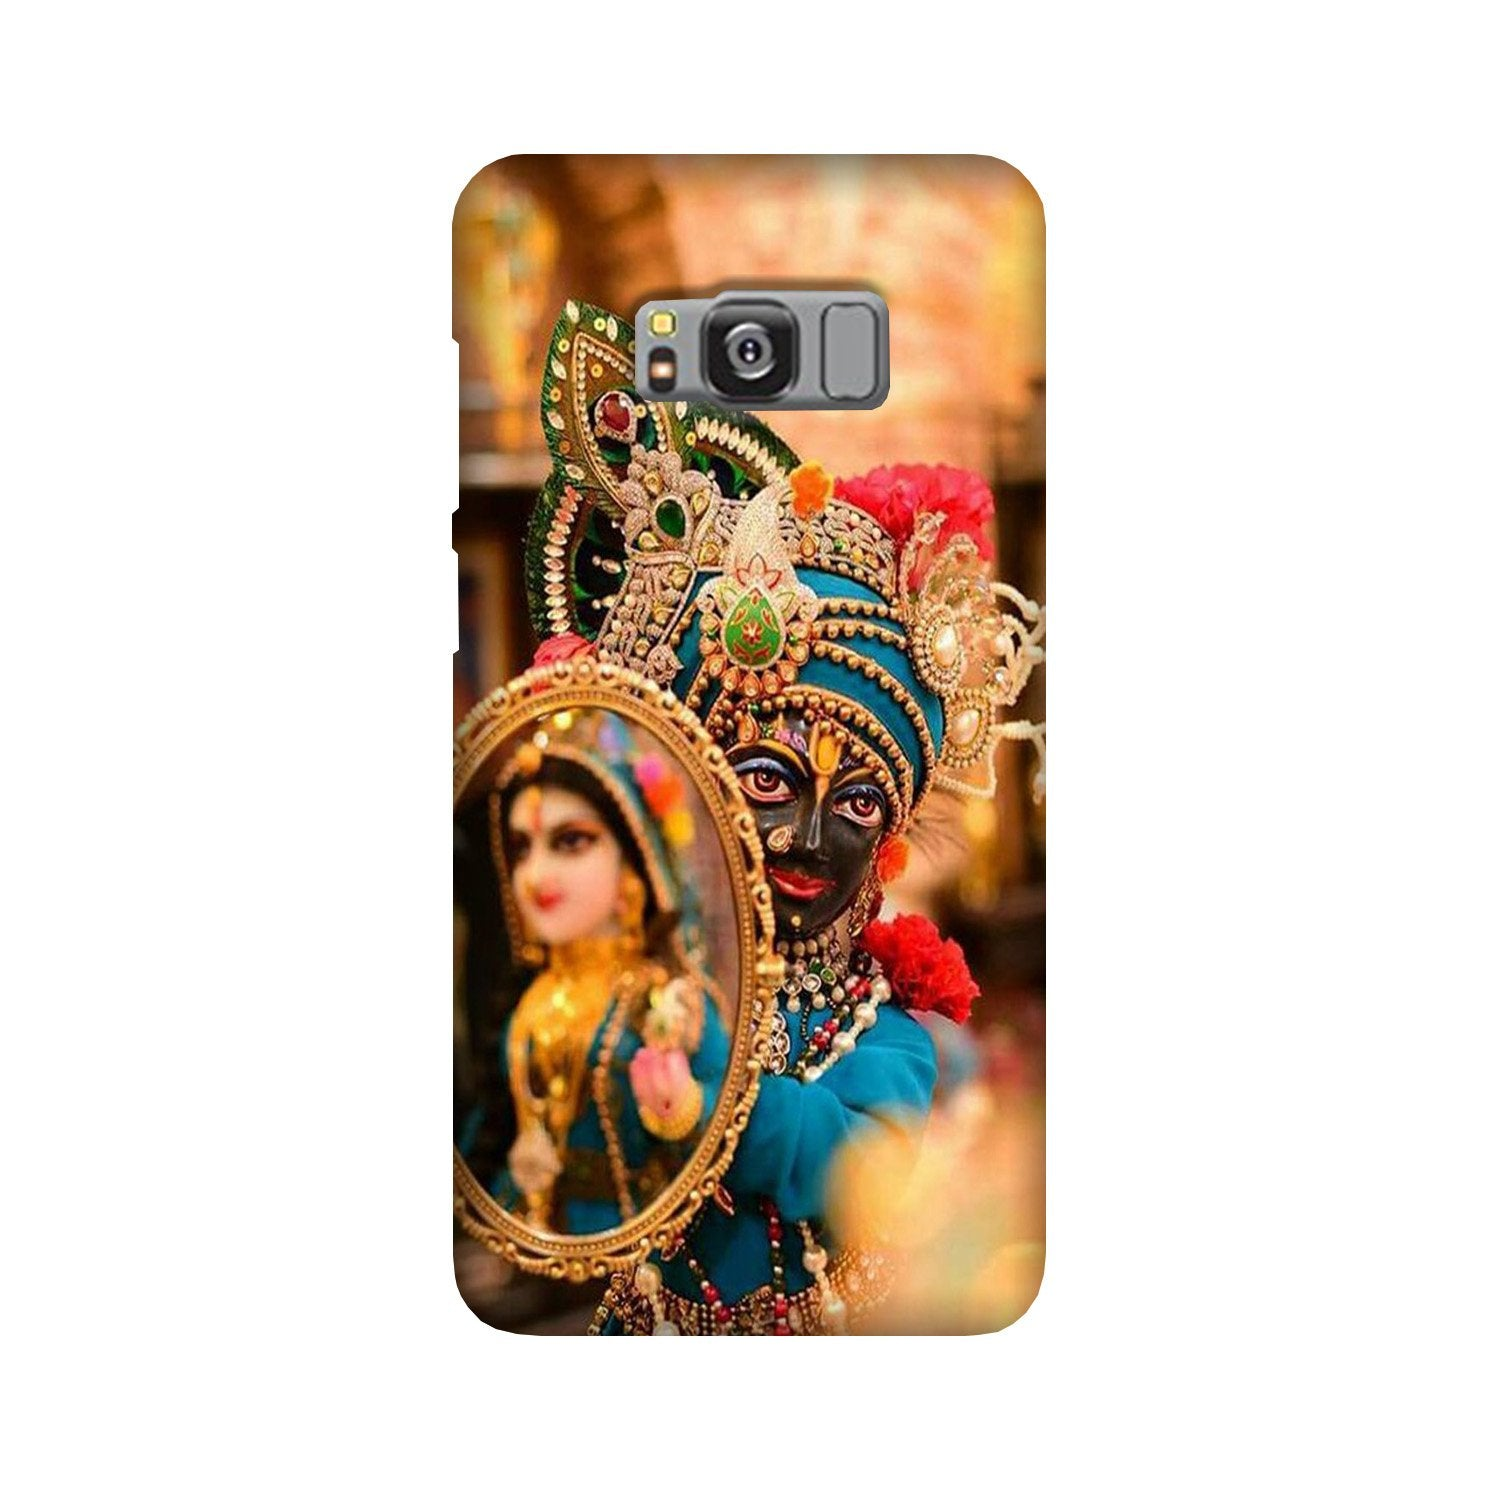 Lord Krishna5 Case for Galaxy S8